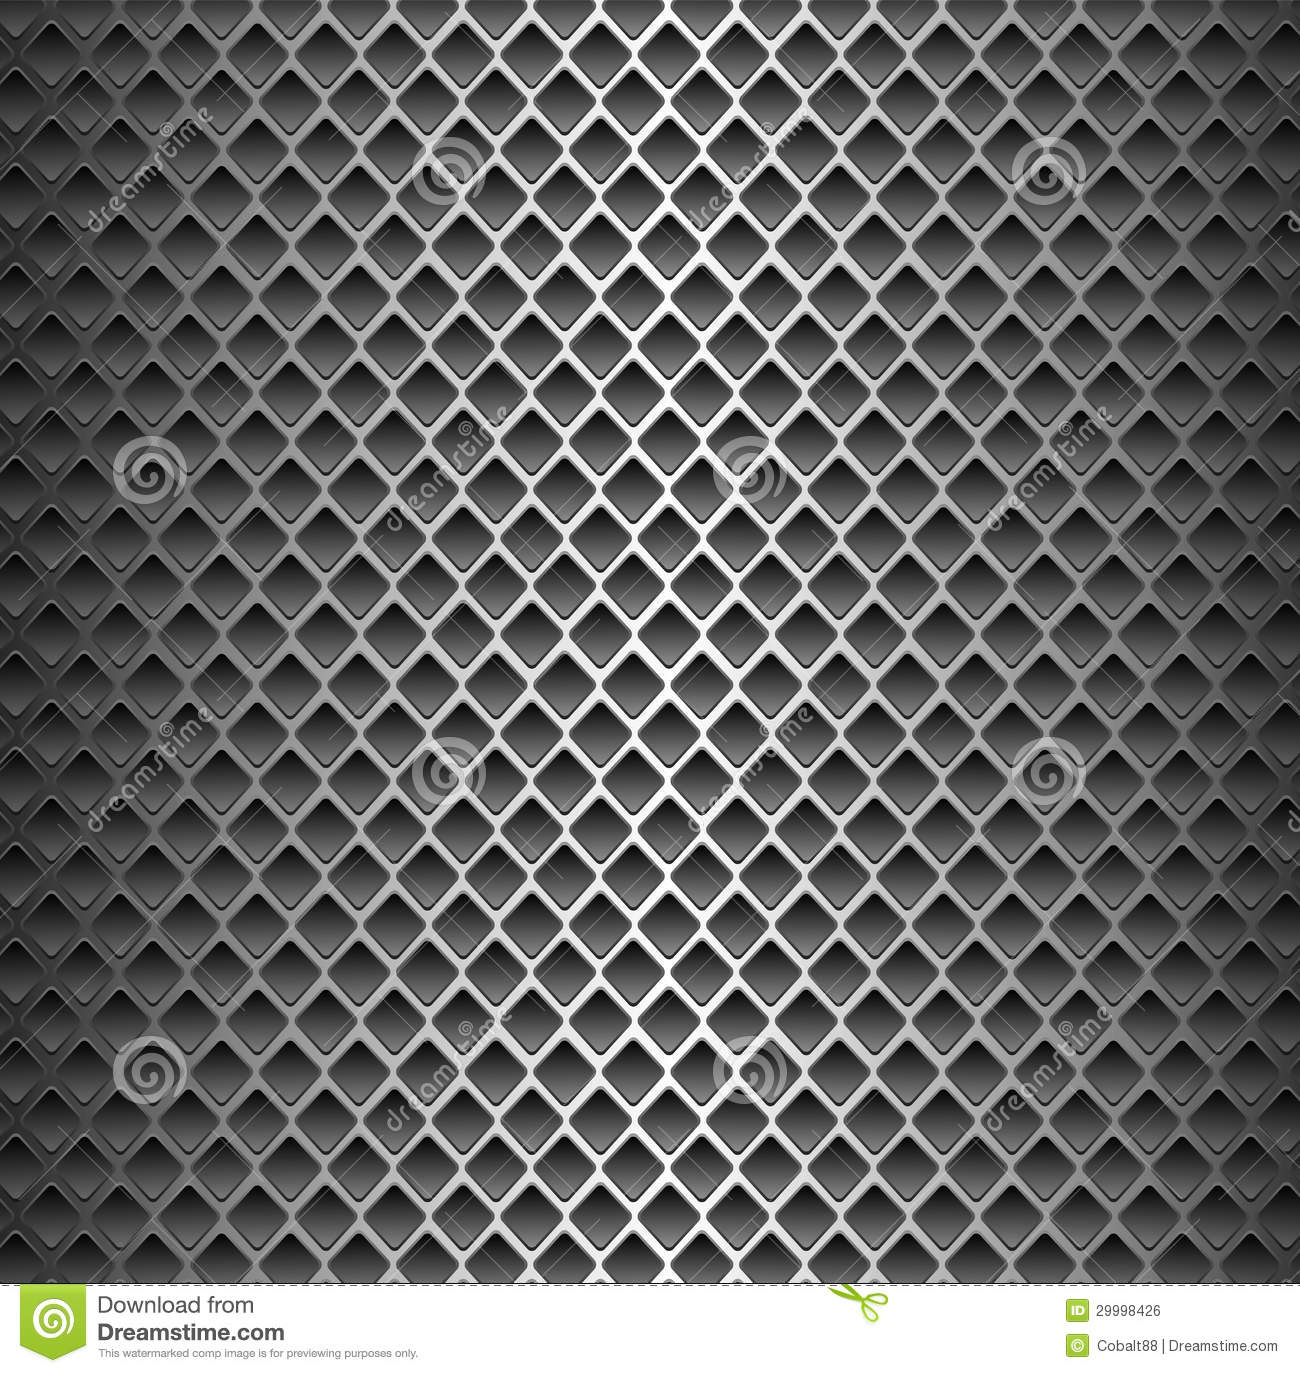 Seamless Texture Background Royalty Free Stock Image